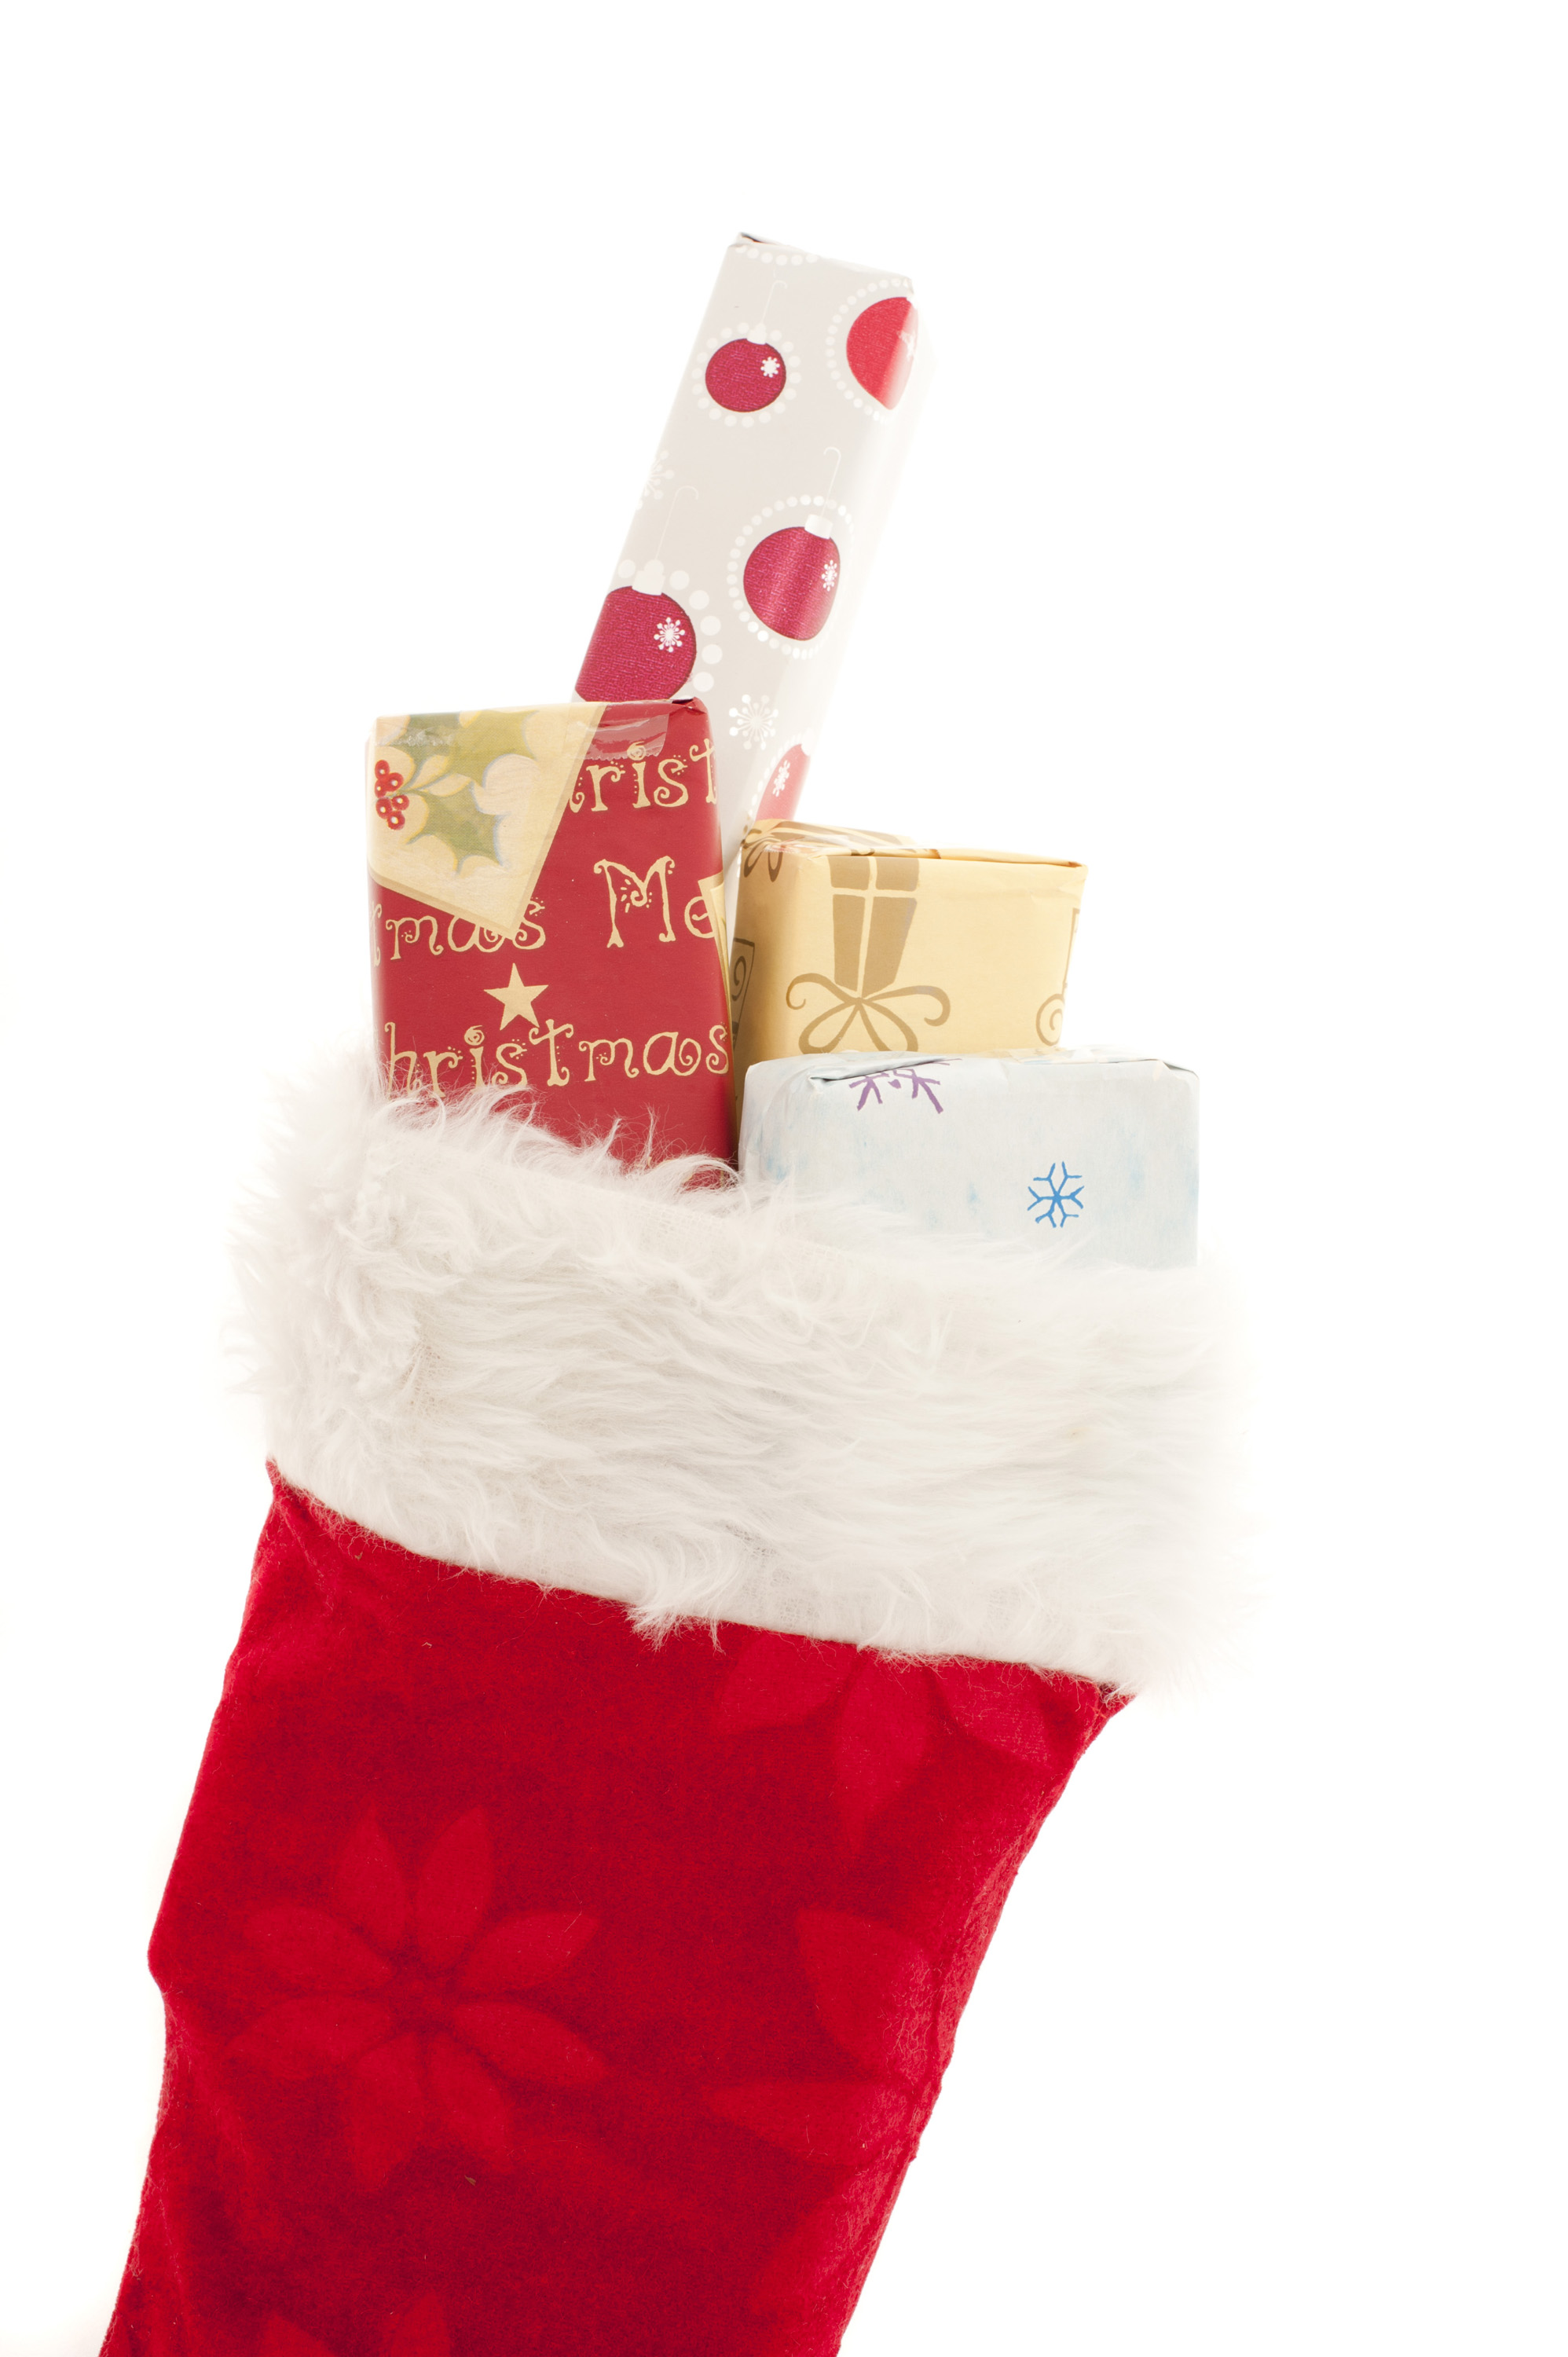 Festive red Xmas stocking filled with colorful Christmas gifts to celebrate the holiday season isolated on white